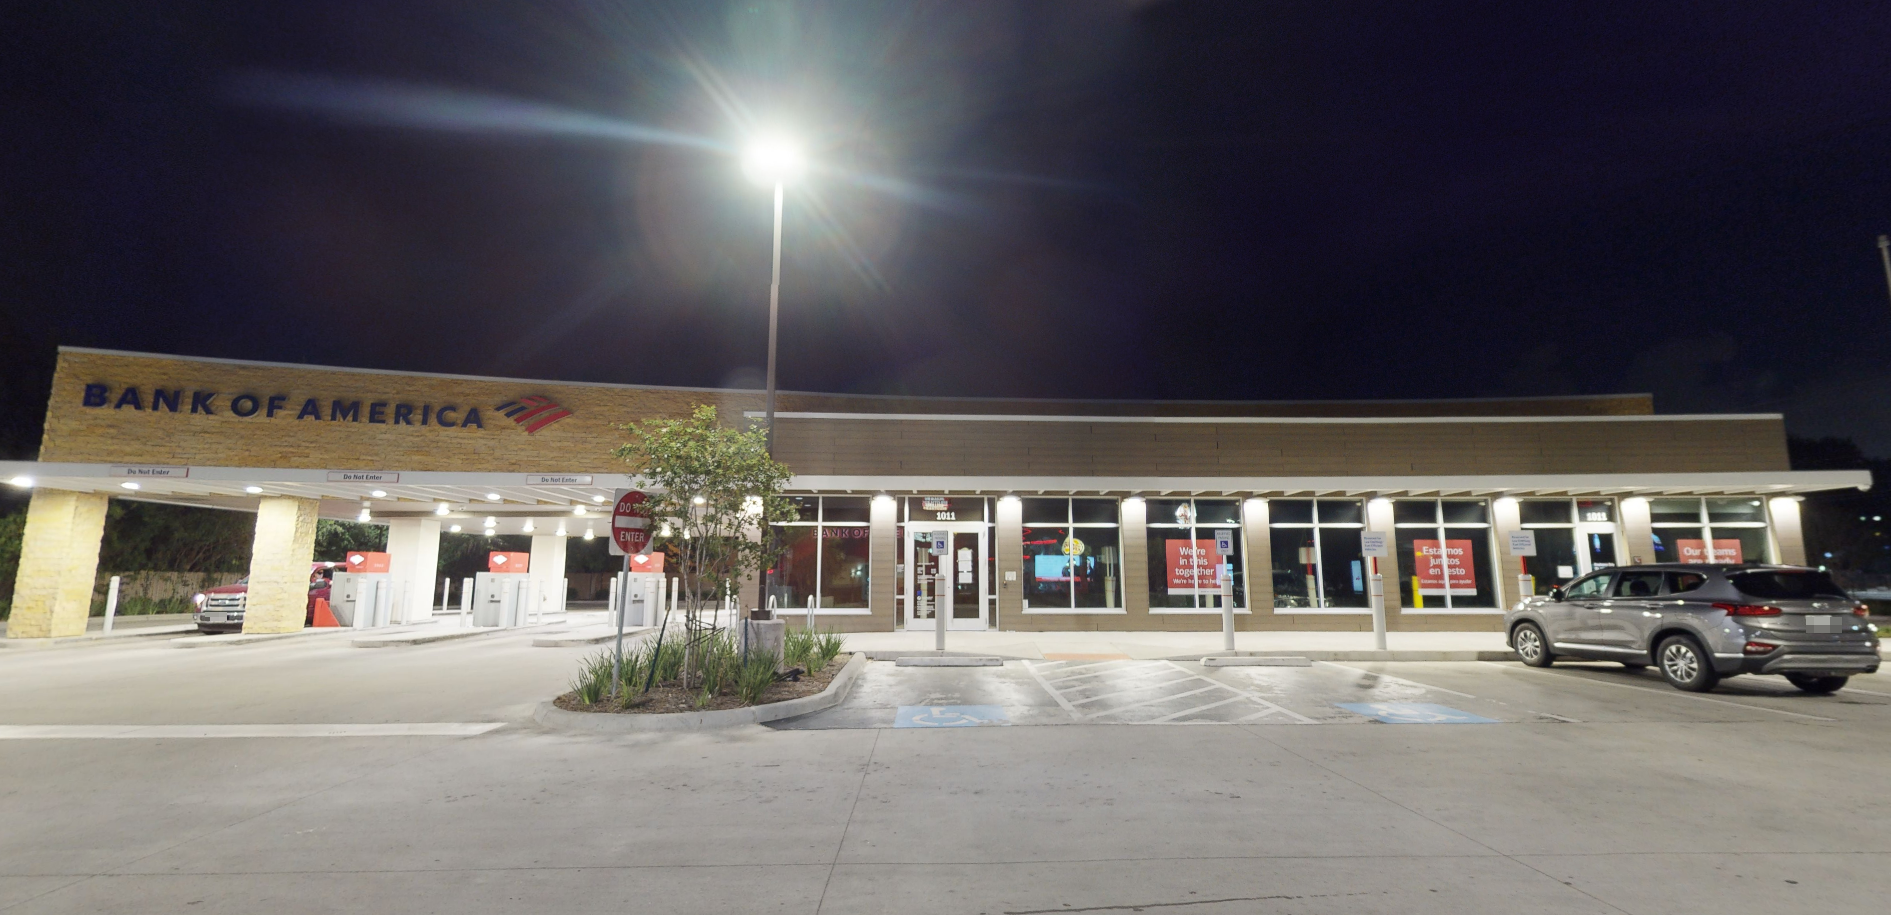 Bank of America financial center with drive-thru ATM | 1011 Federal Rd, Houston, TX 77015